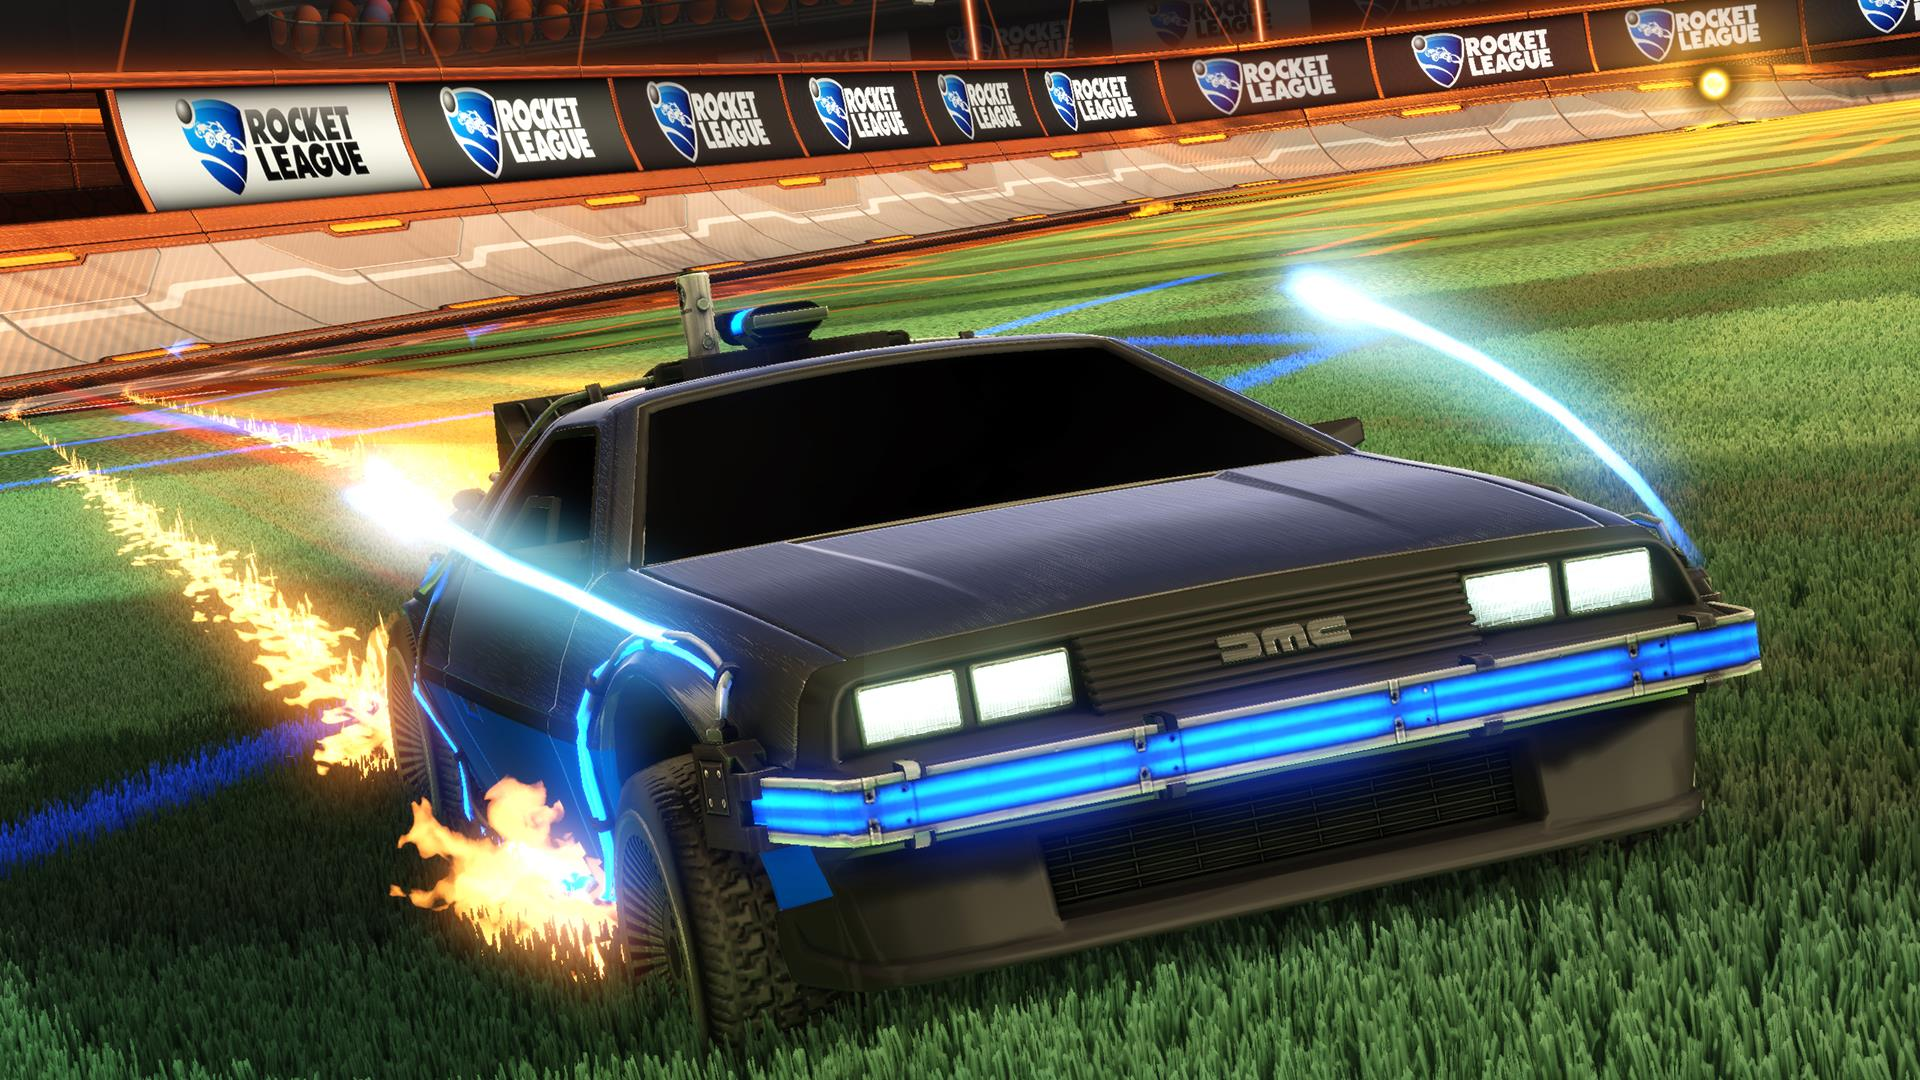 Rocket league is getting back to the future s delorean for Garage auto legue langueux